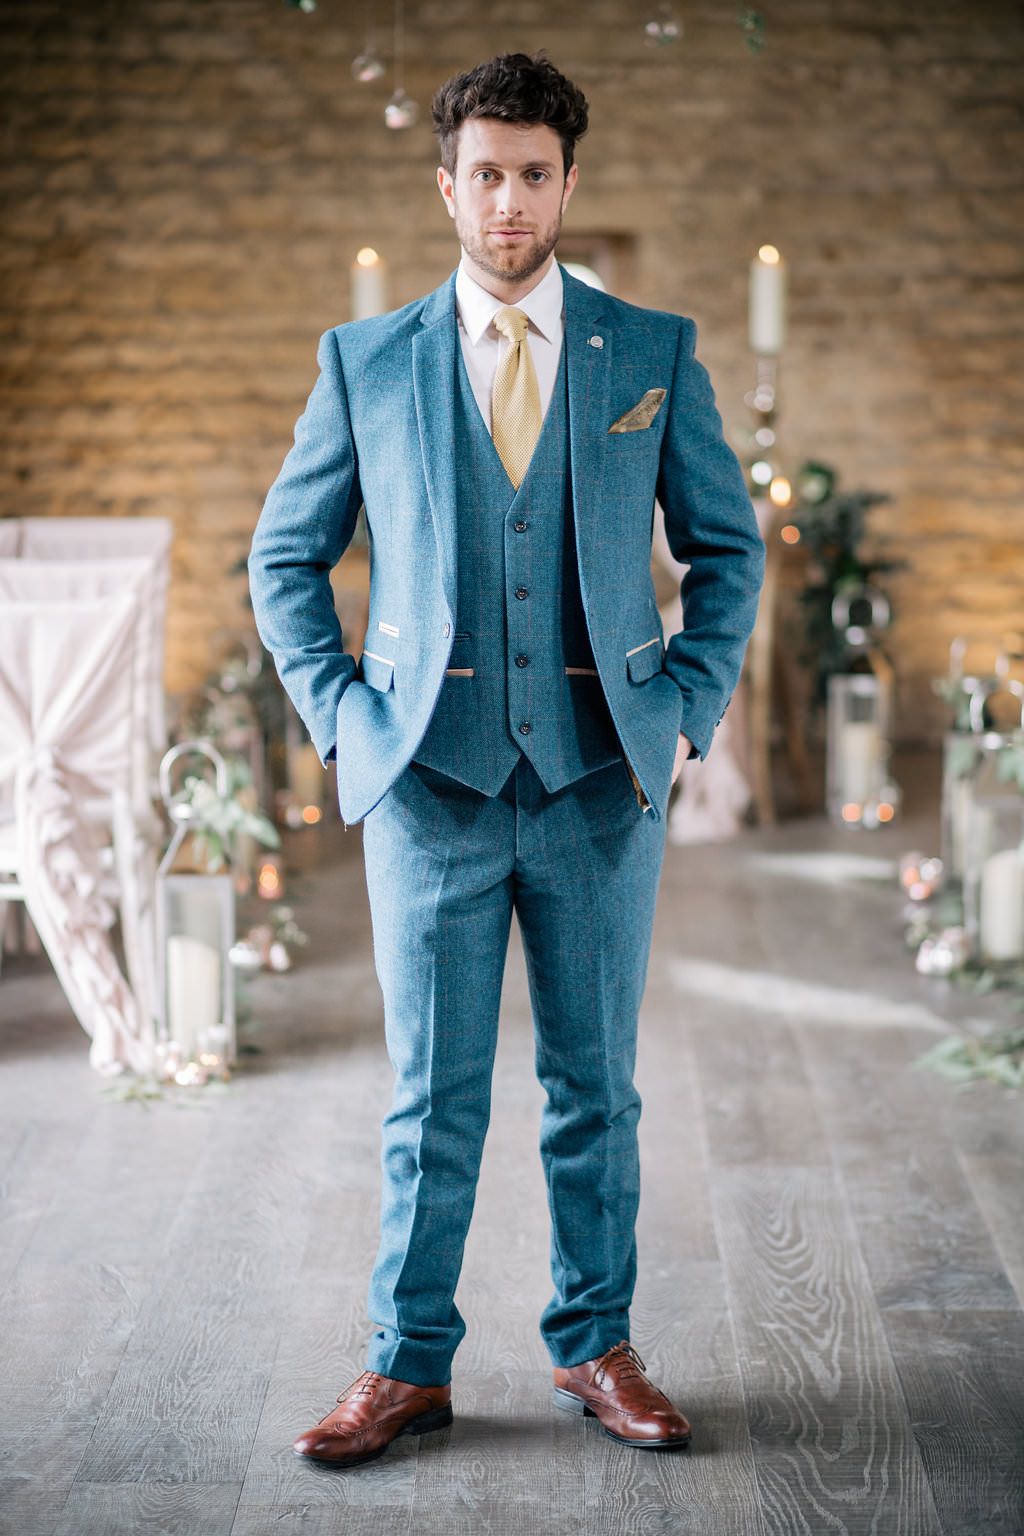 Groom Suit Blue Mustard Knitted Tie Badge Pin Lapstone Barn Wedding Ideas Cotswolds Katie Hamilton Photography